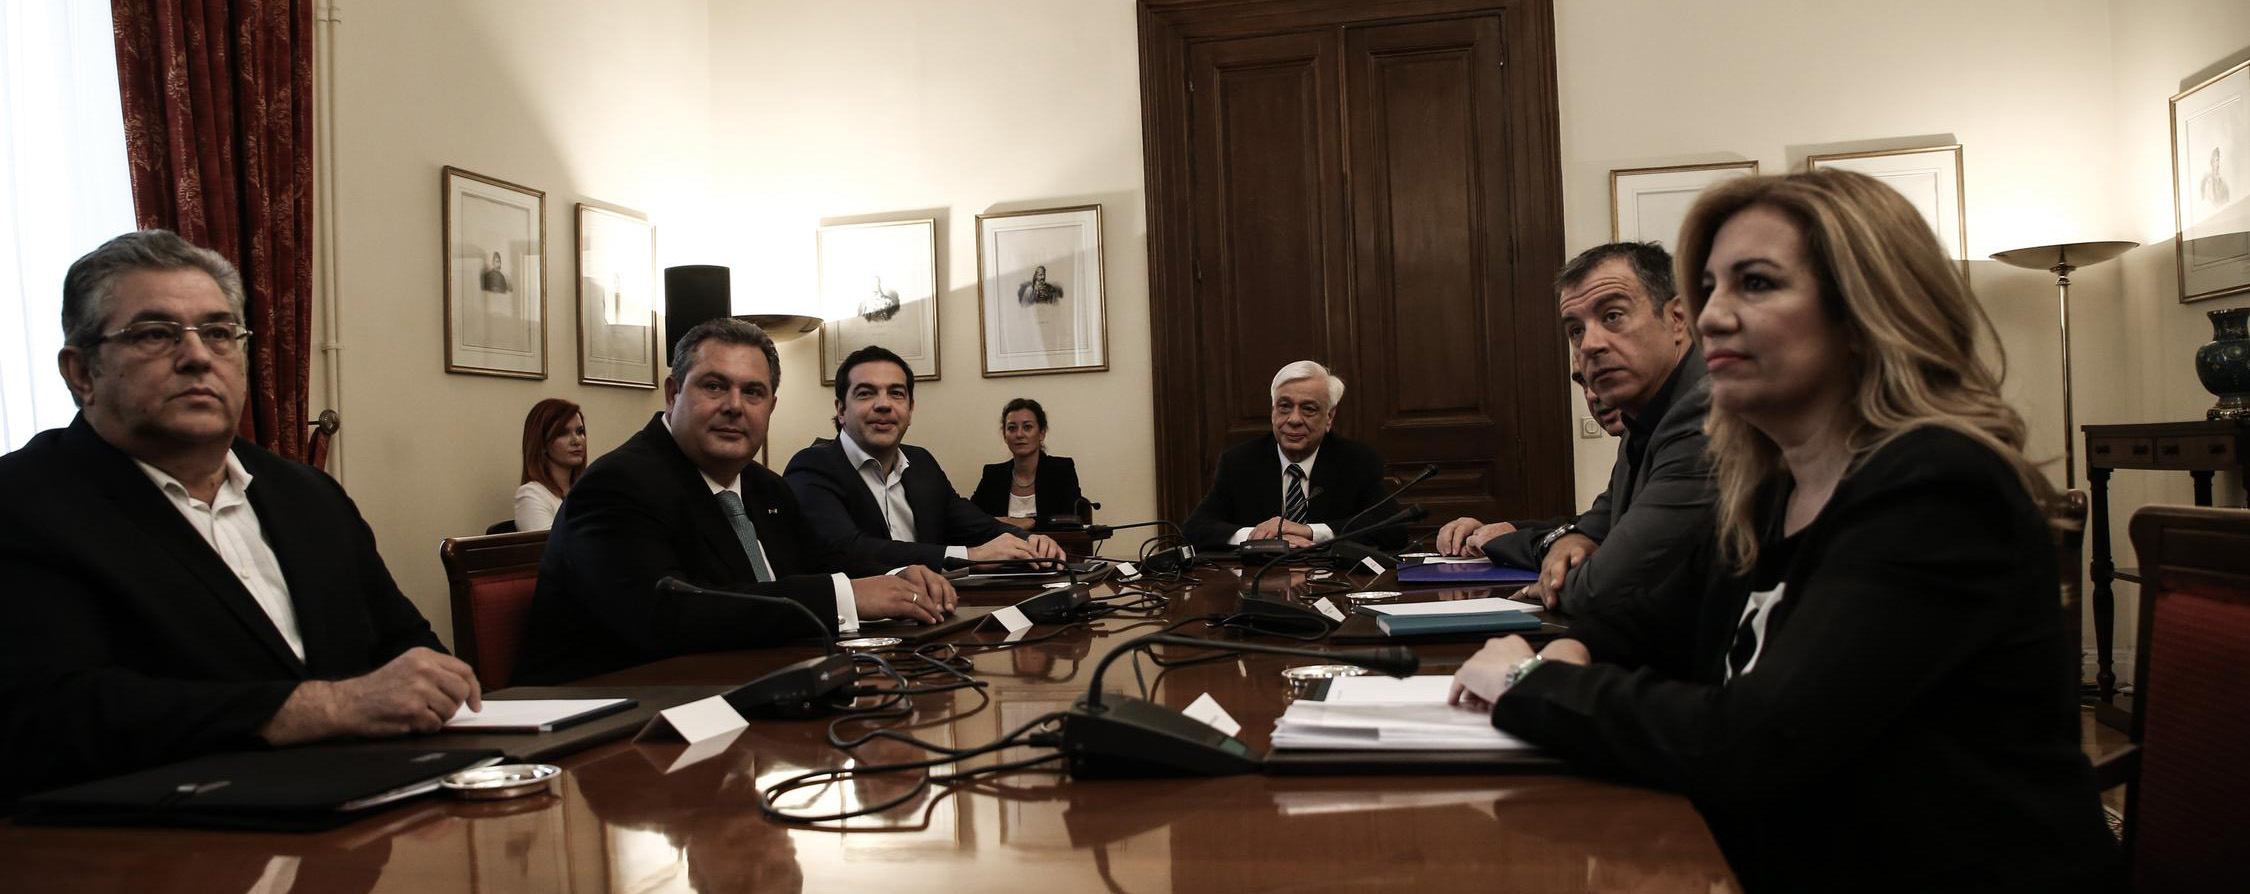 Meeting of the council of the political leaders, at the Presidential Mansion, in Athens, on July 6, 2015 / Συμβούλιο των πολιτικών αρχηγών, στο Προεδρικό Μέγαρο, Αθήνα, στις 6 Ιουλίου, 2015